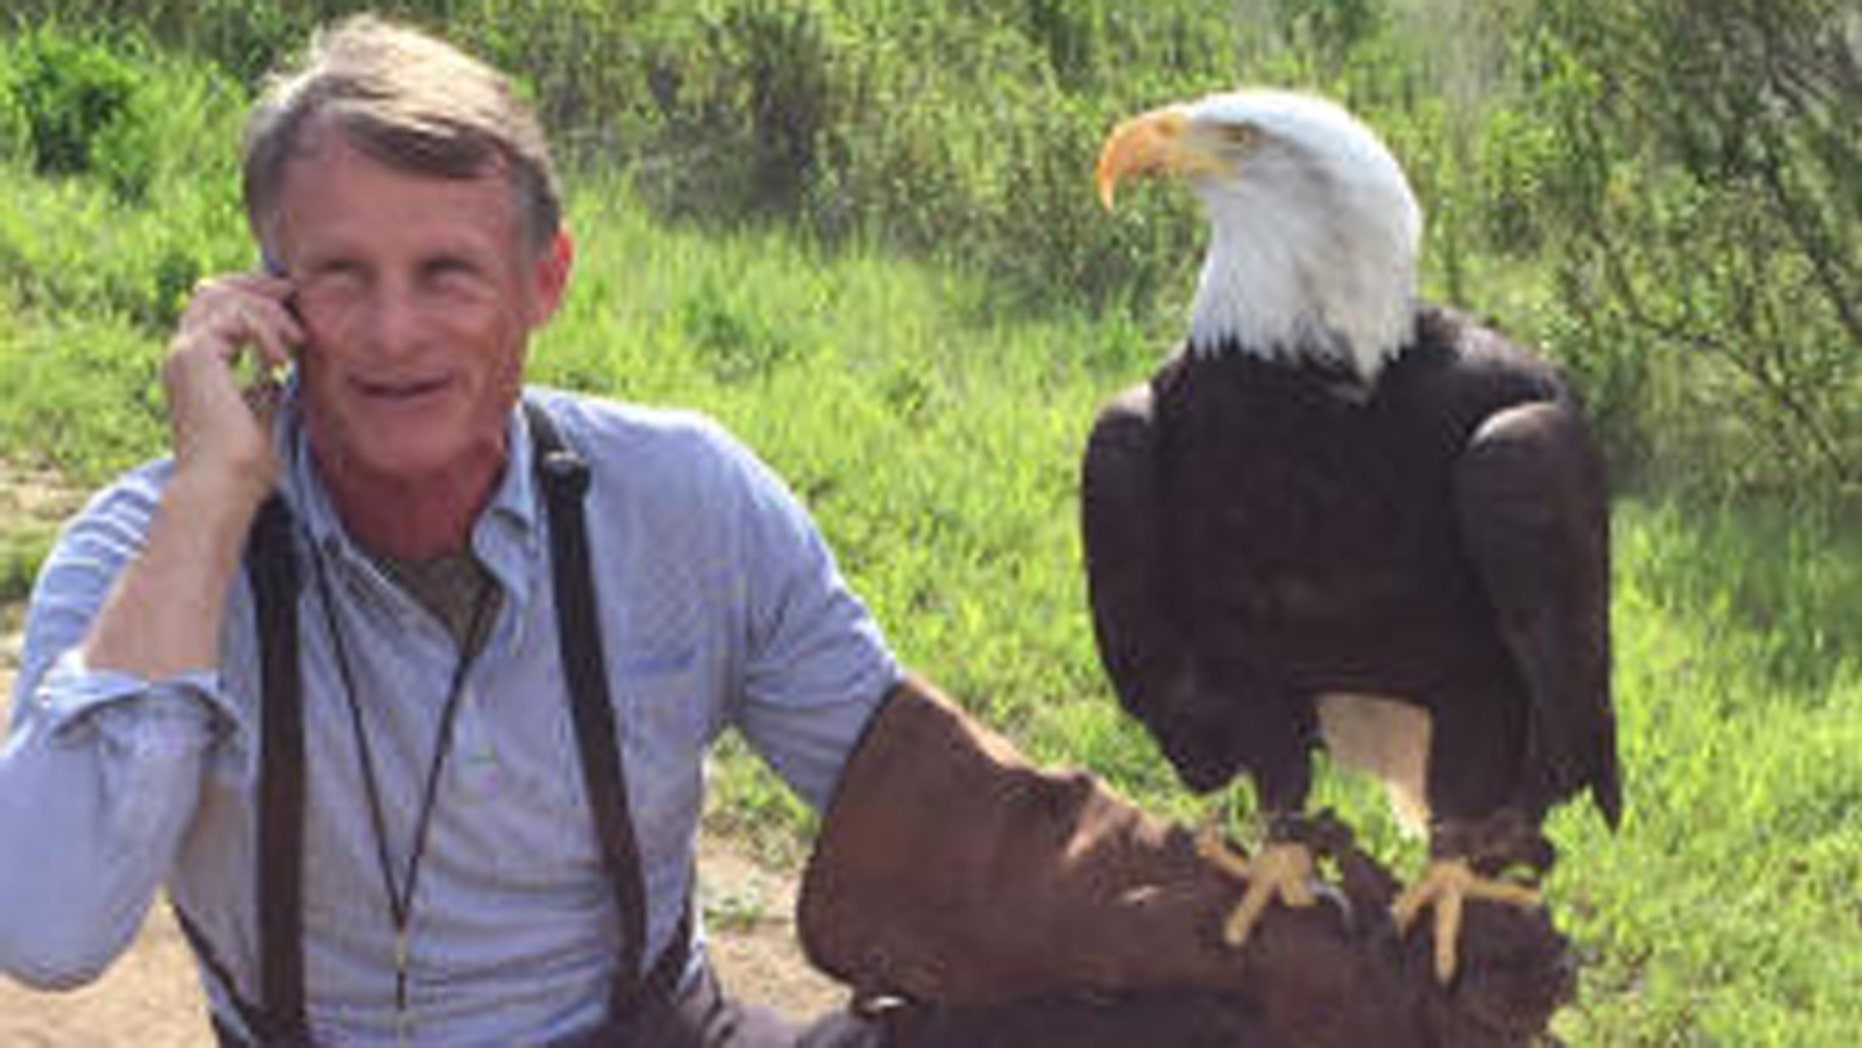 Photo shows Sequoia bald eagle and Palo Alto Junior Museum and Zoo director John Aikin. (Palo Alto Junior Museum & Zoo)